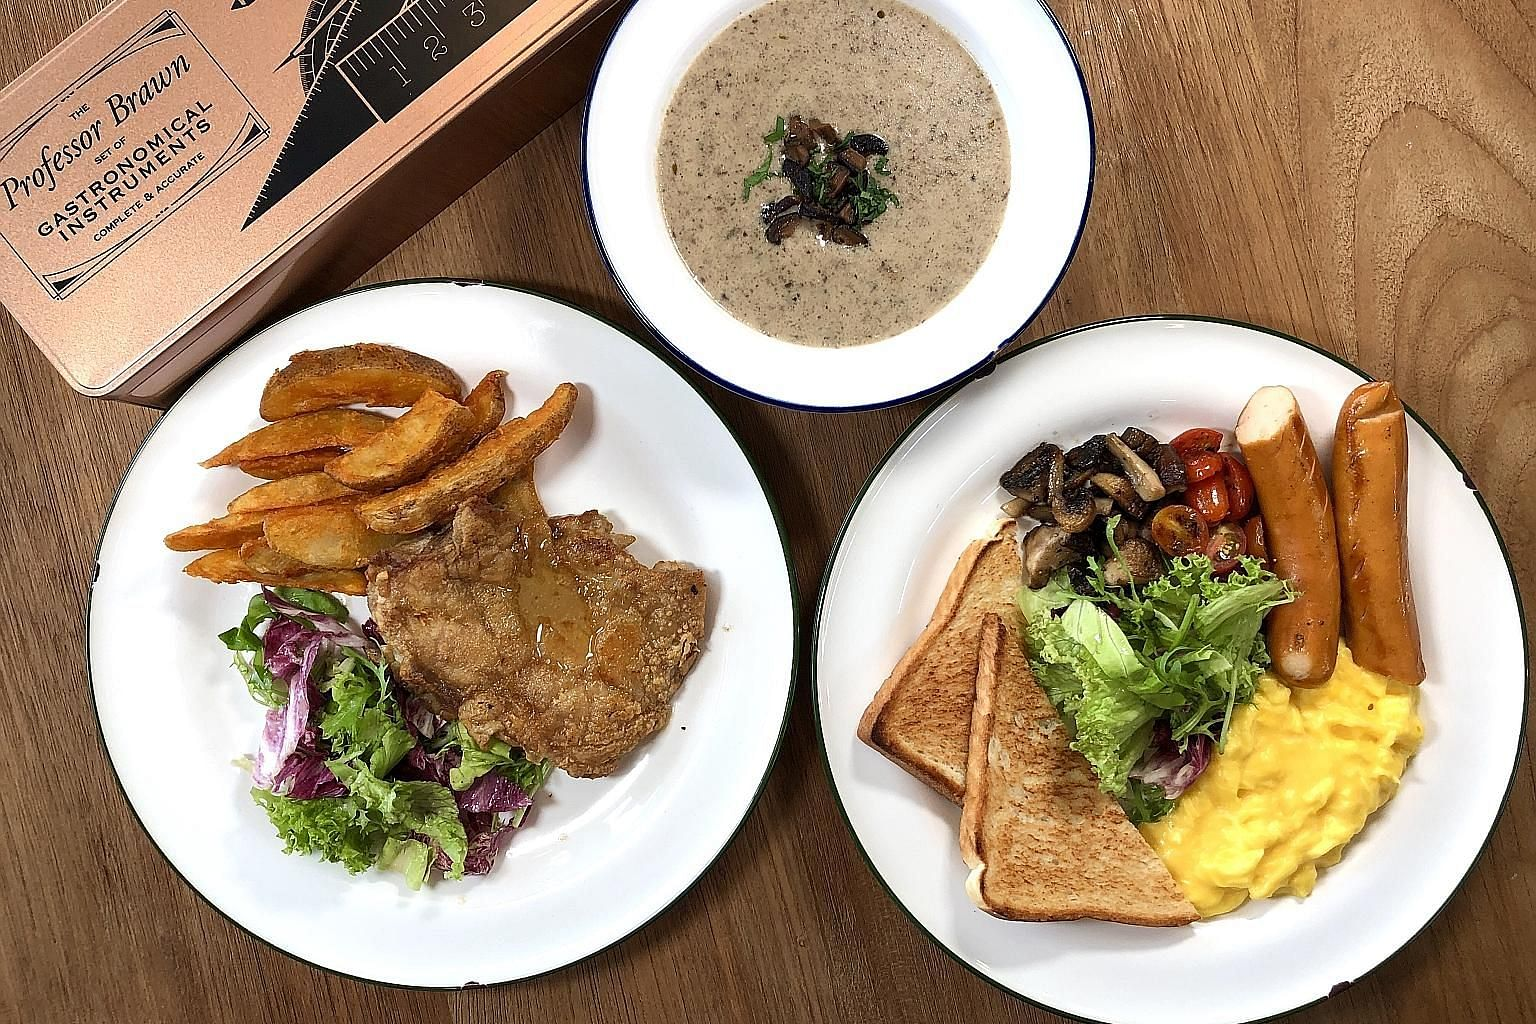 Above, clockwise from top: Cream Of Mushroom Soup, All-Day Breakfast Set and Grilled Chicken With Truffle Sauce.